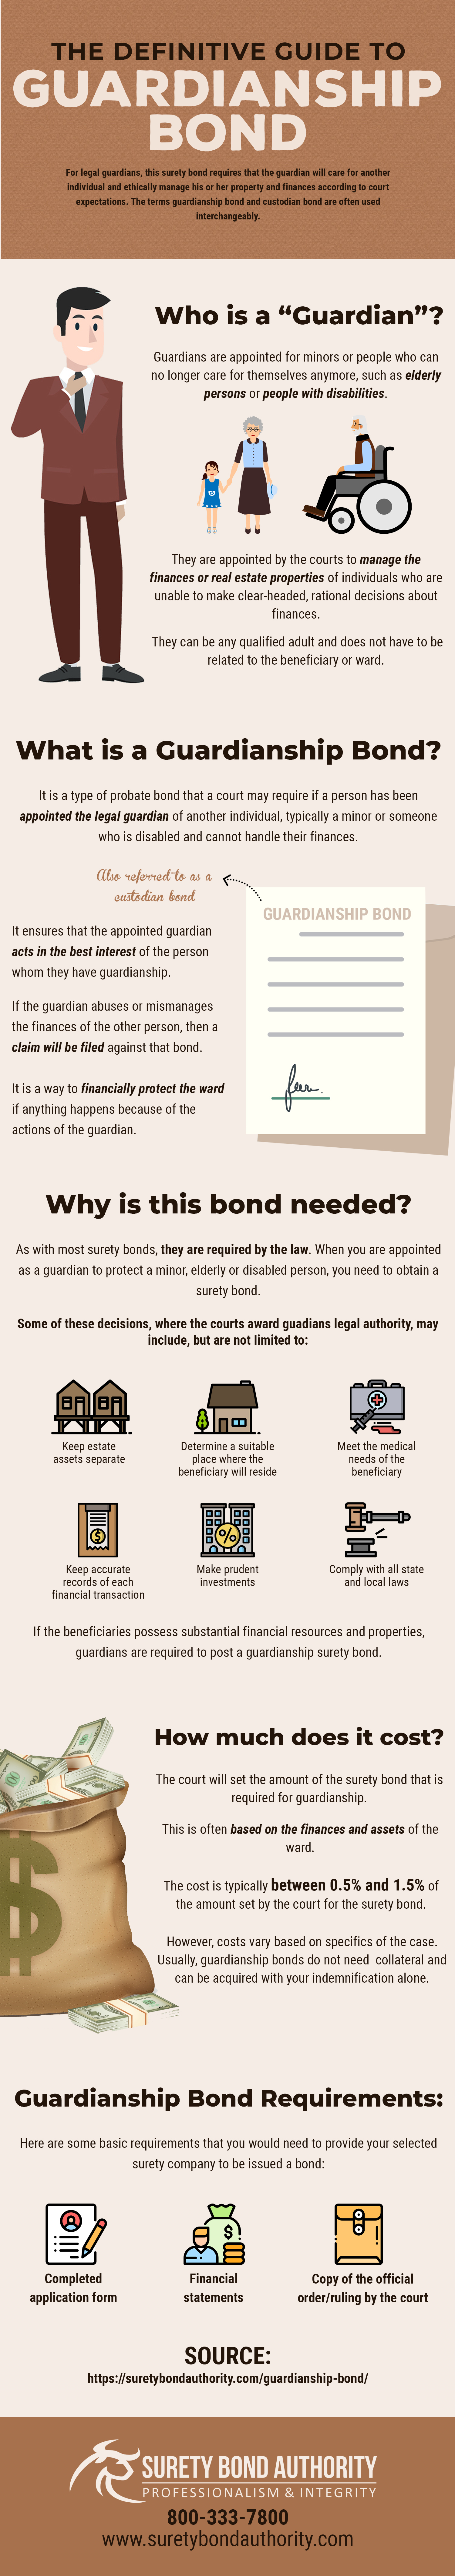 Guardianship Bond Infographic